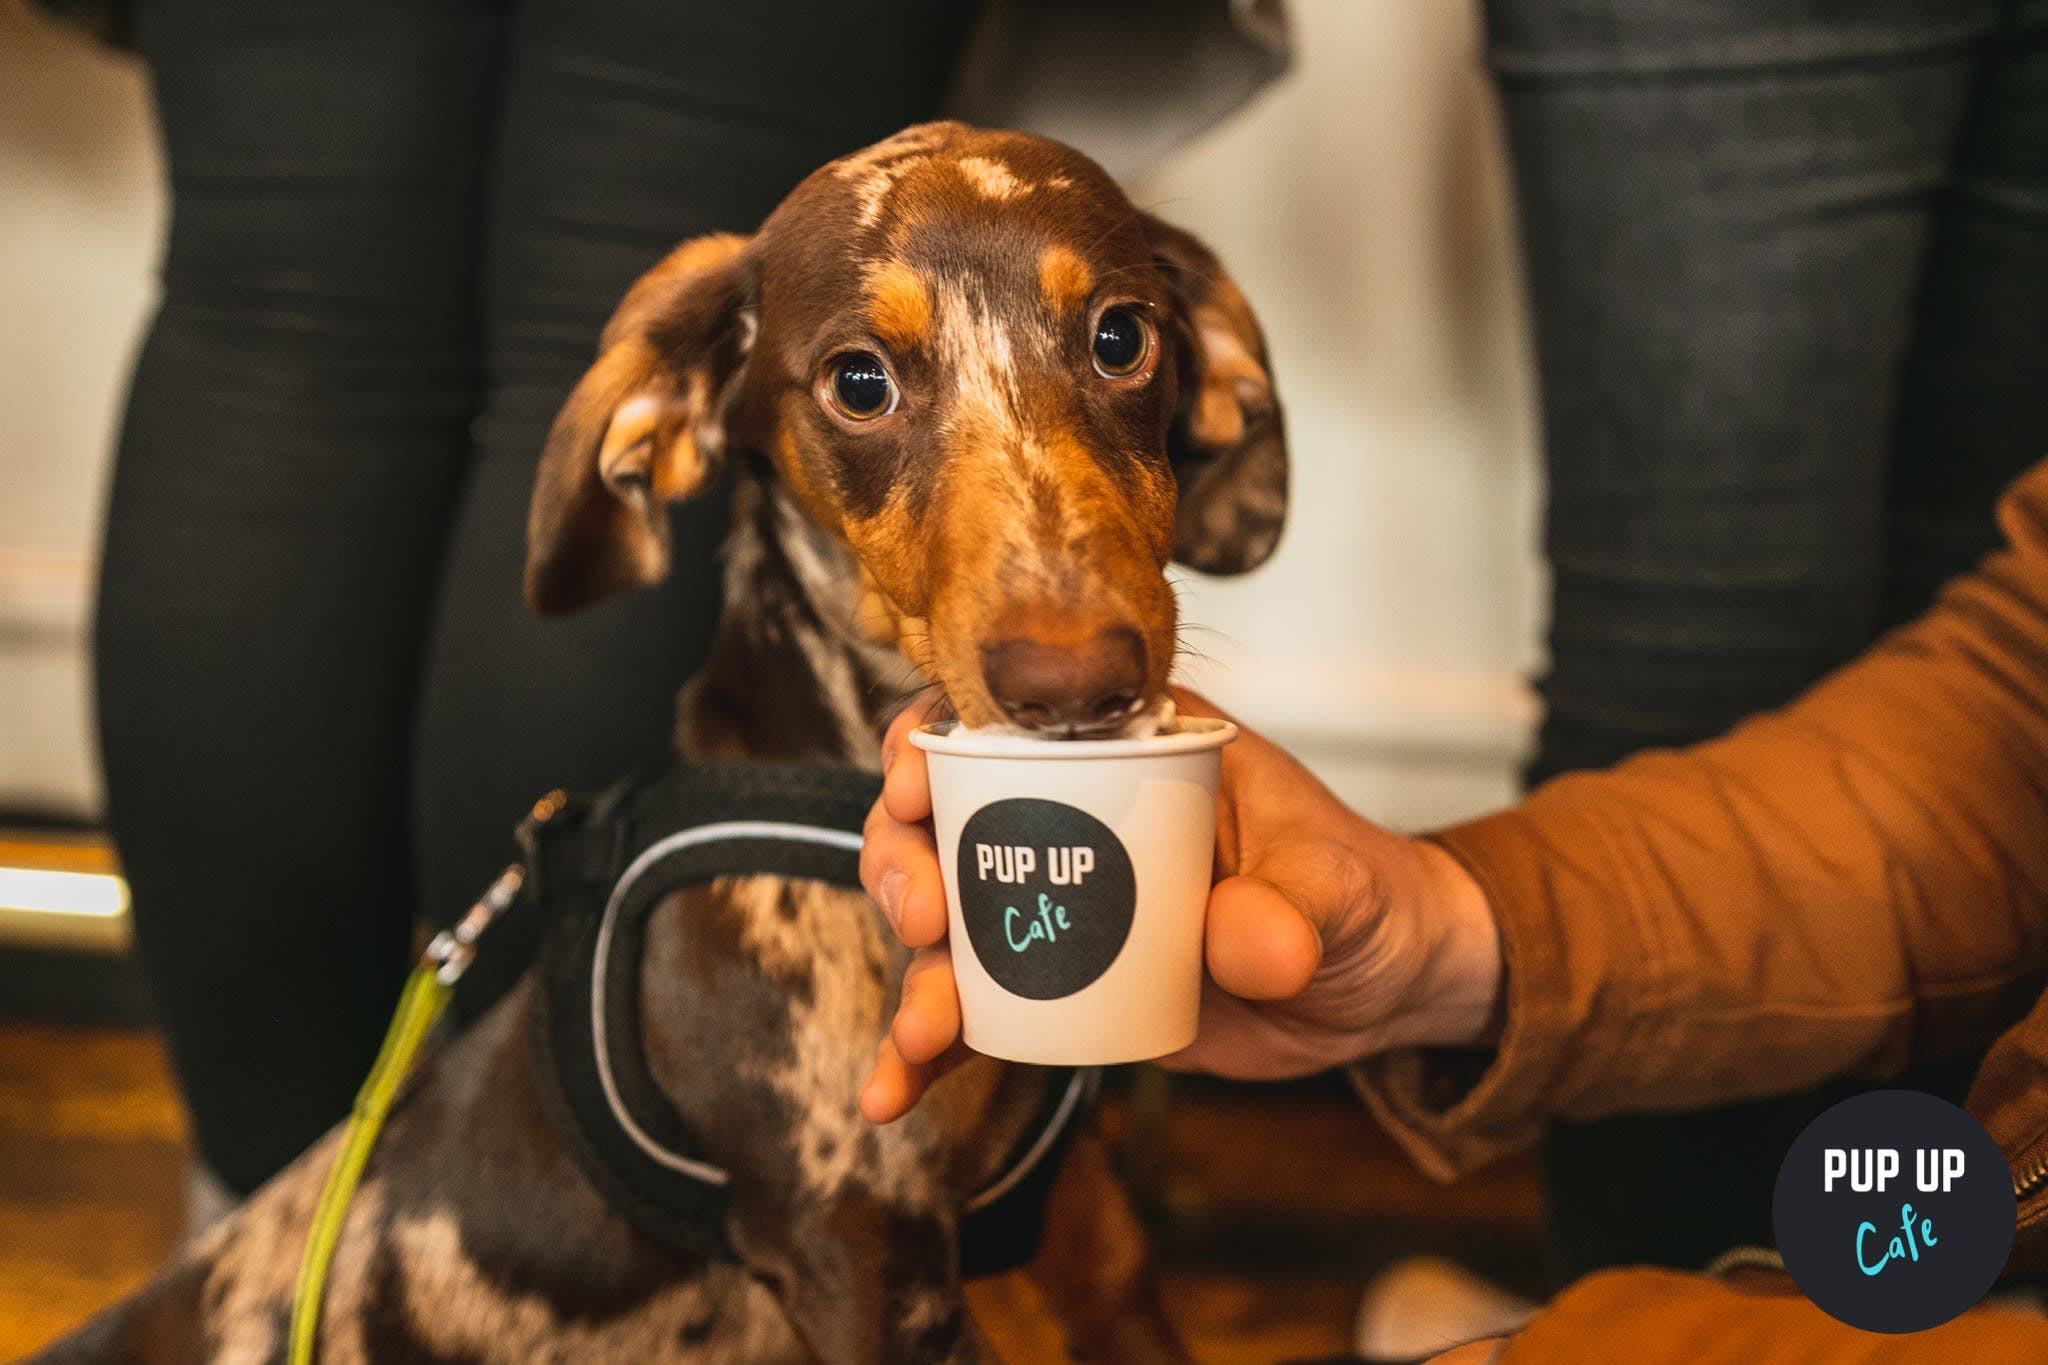 A sausage dog cafe could be coming to a place near you!